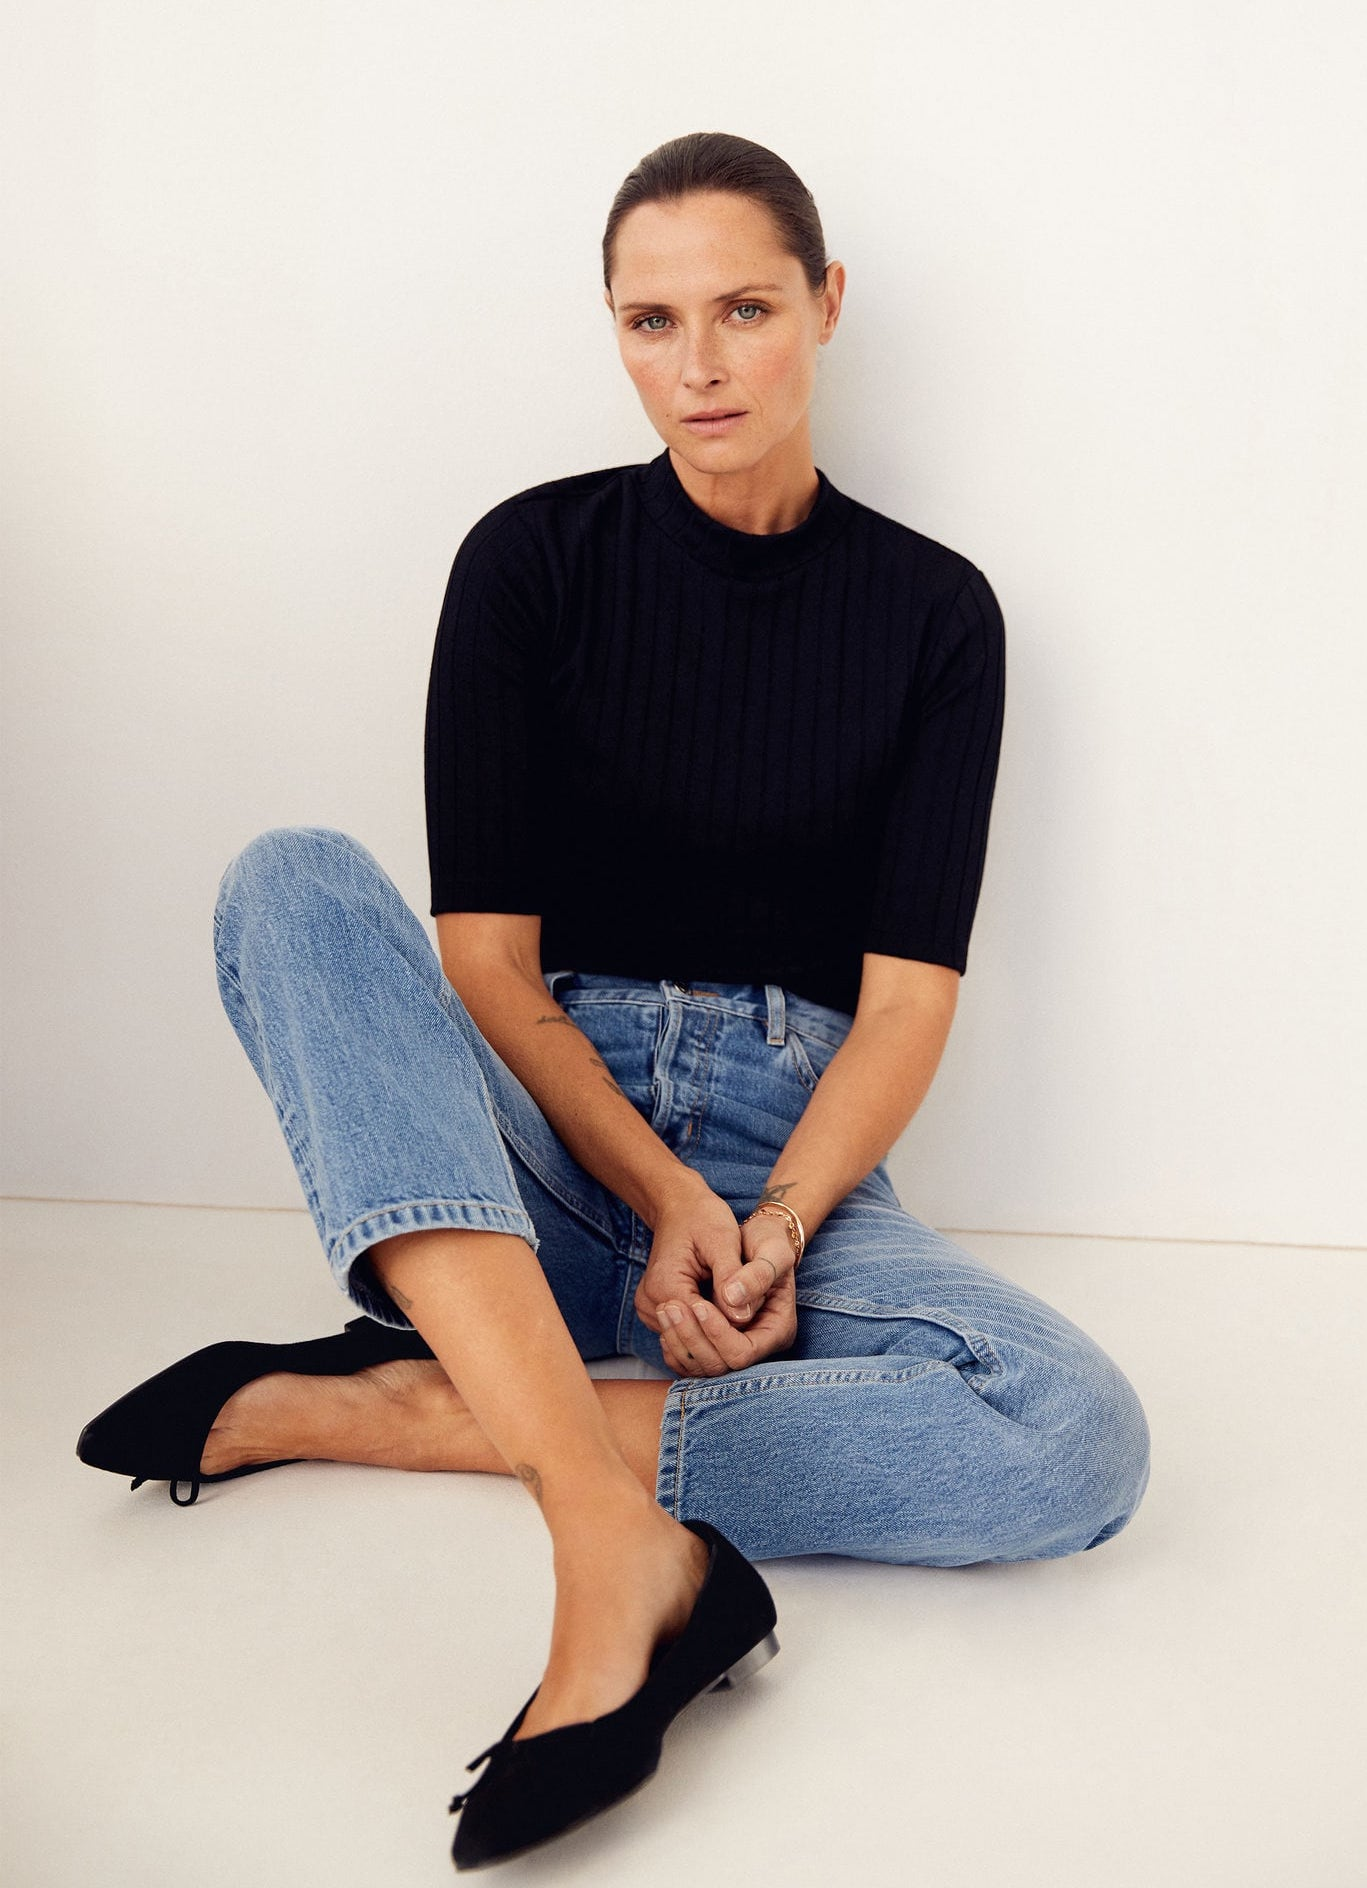 Classic casual chic spring outfit idea with shor sleeve black turtleneck mock neck top, straight-leg jeans, black ballet flats — Tasha Tilberg for Mango